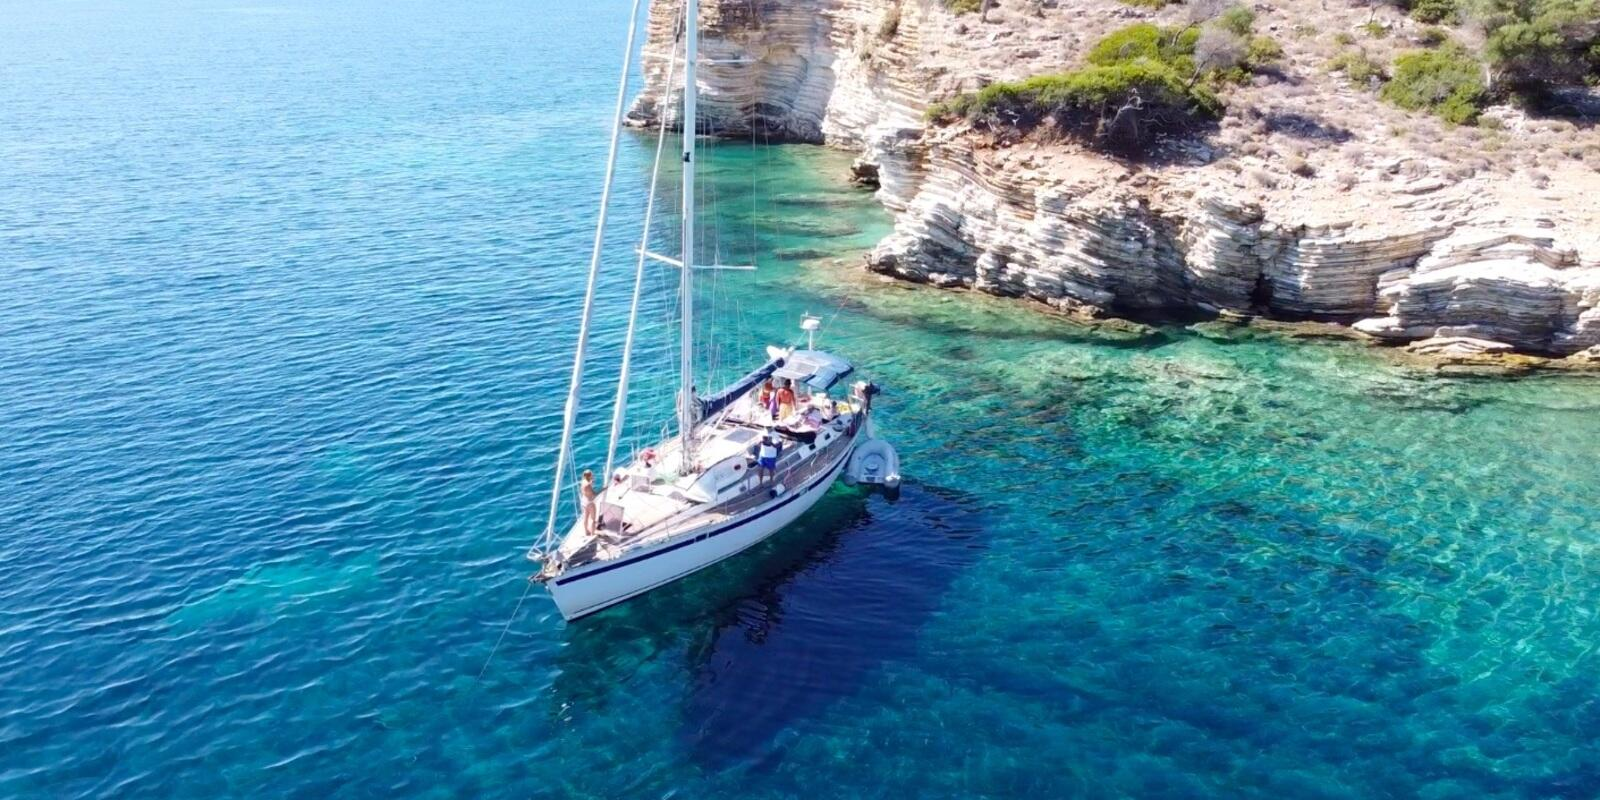 Cruise in the Cyclades: from Milos to Santorini